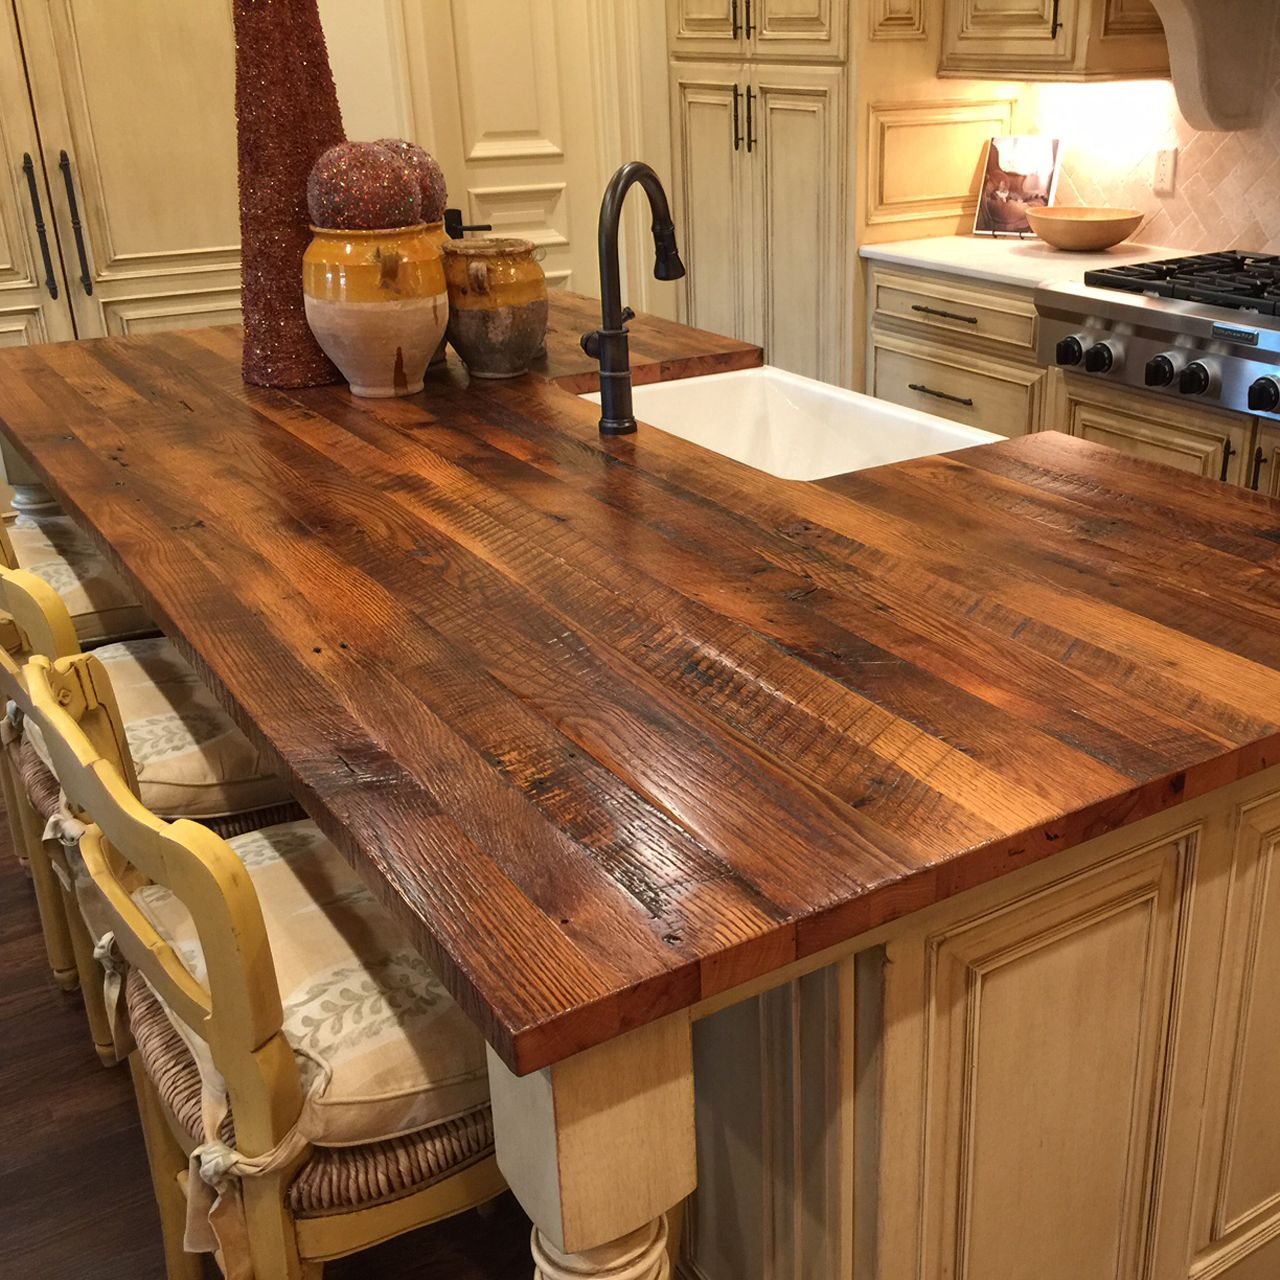 A Refined Rustic Kitchen Adds An Authentic Island Top Made From Reclaimed Oak The Surfac Kitchen Island Countertop Wood Kitchen Island Farmhouse Style Kitchen